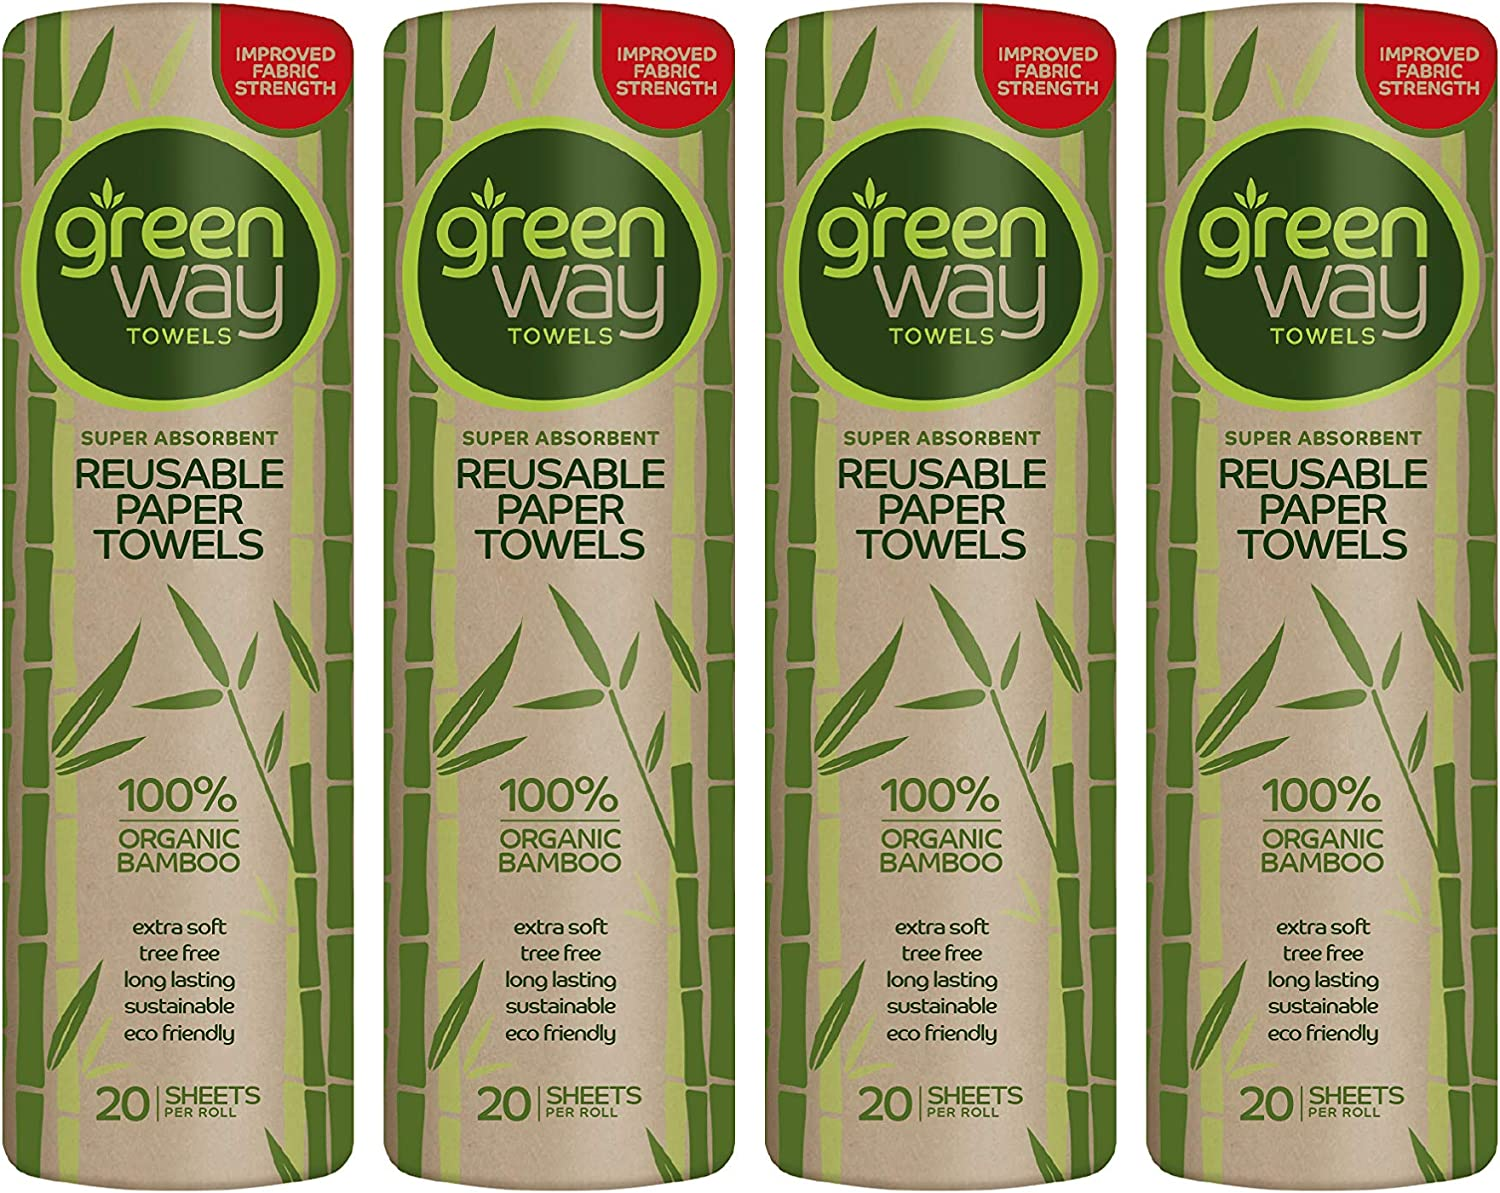 Greenway Towels Bamboo Paper Towels Eco Friendly Products - Machine Washable/ReusableFree Washing Bag Included